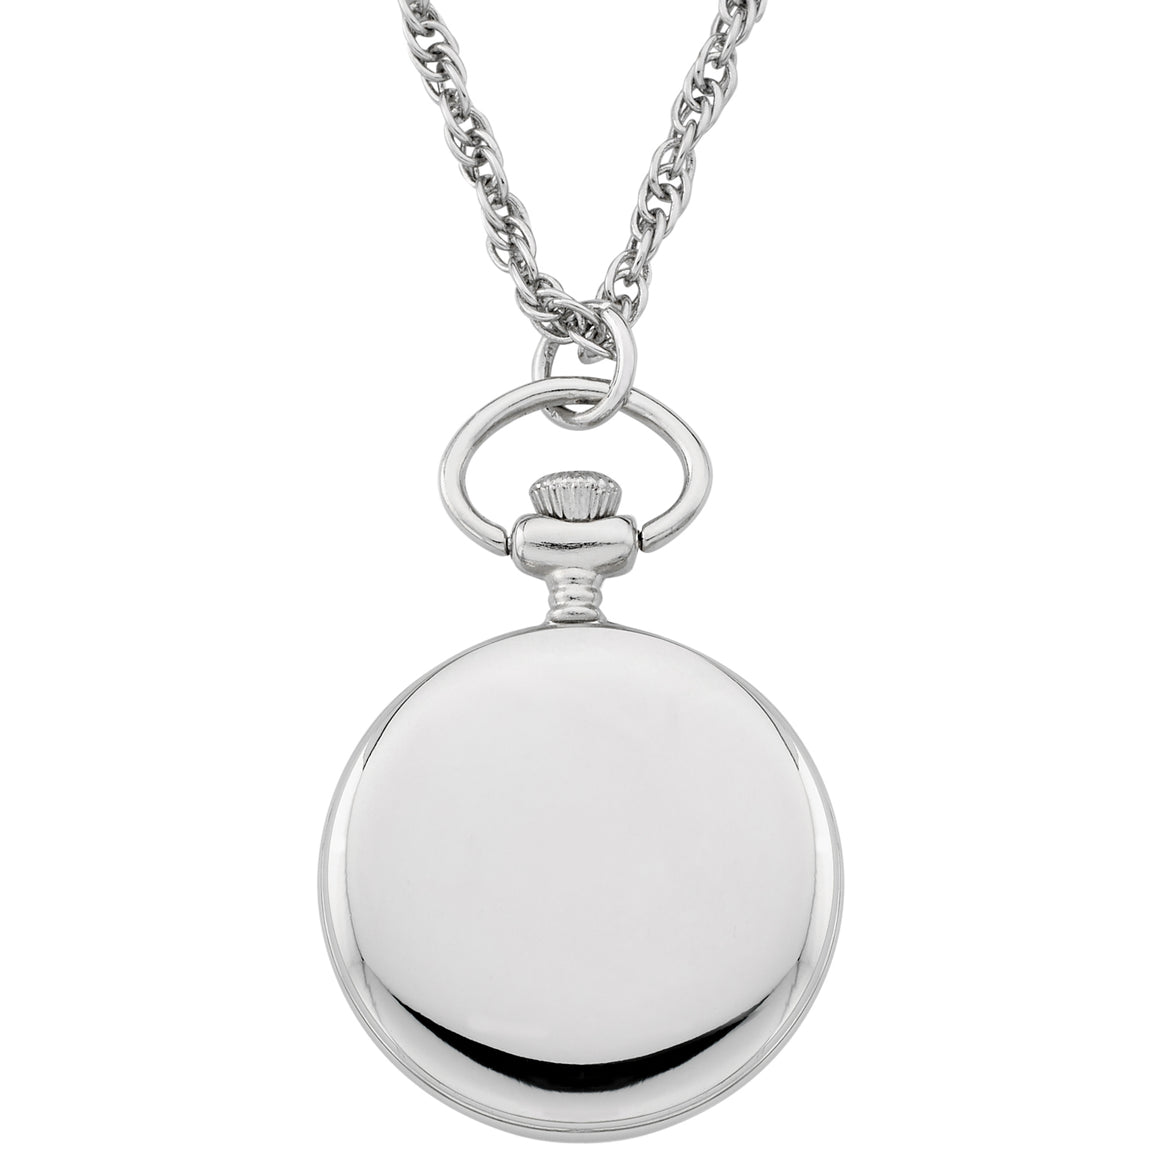 Gotham Women's Silver-Tone Open Face Pendant Watch With Chain # GWC14135SR - Gotham Watch